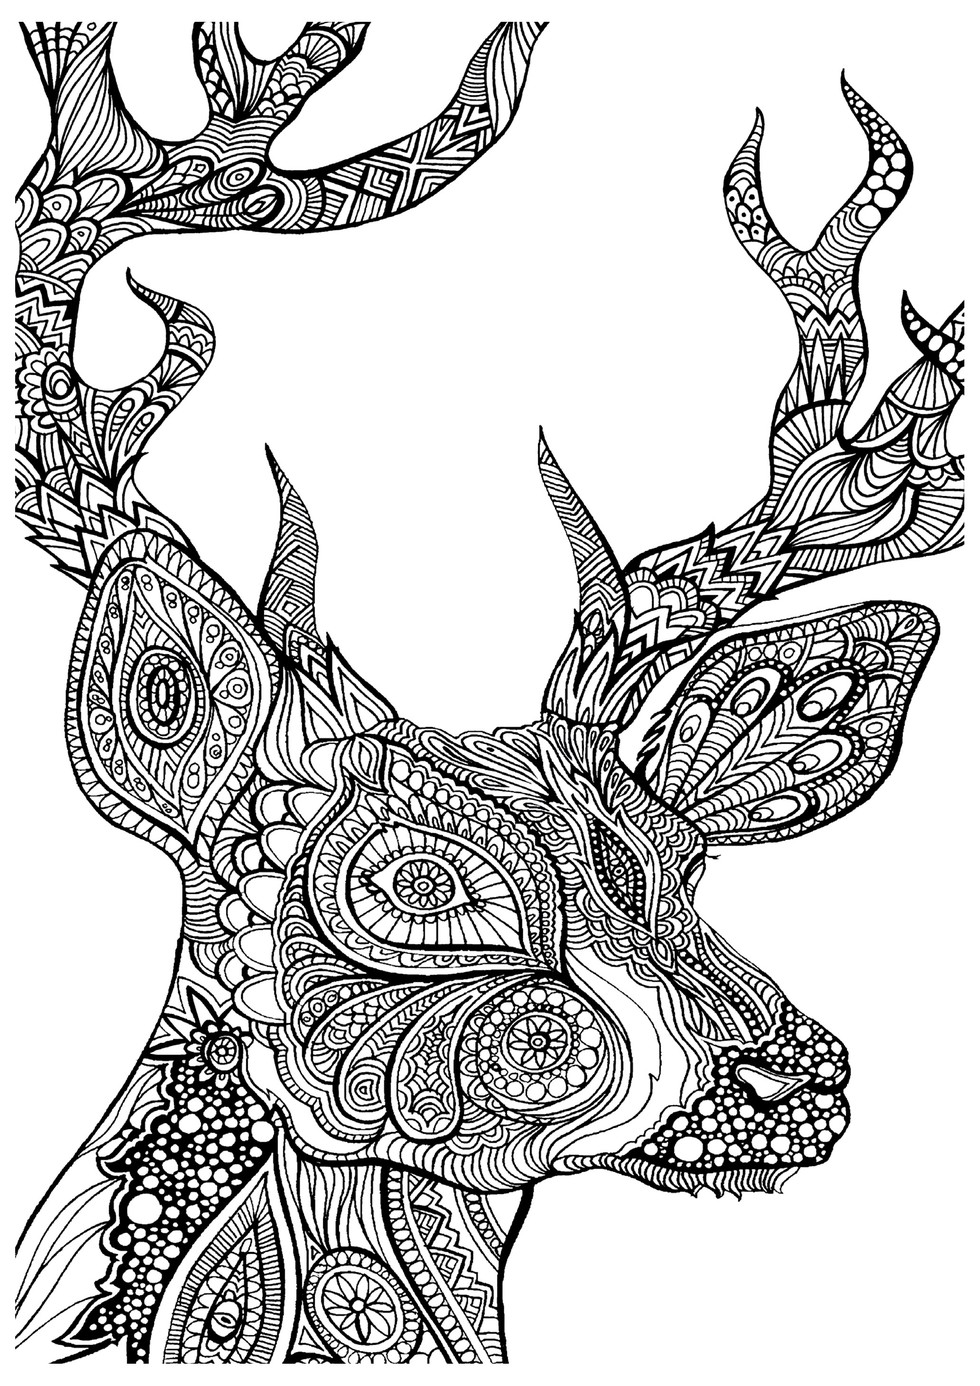 Coloring Pages You Can Color Now : Free adult coloring pages you can print right now